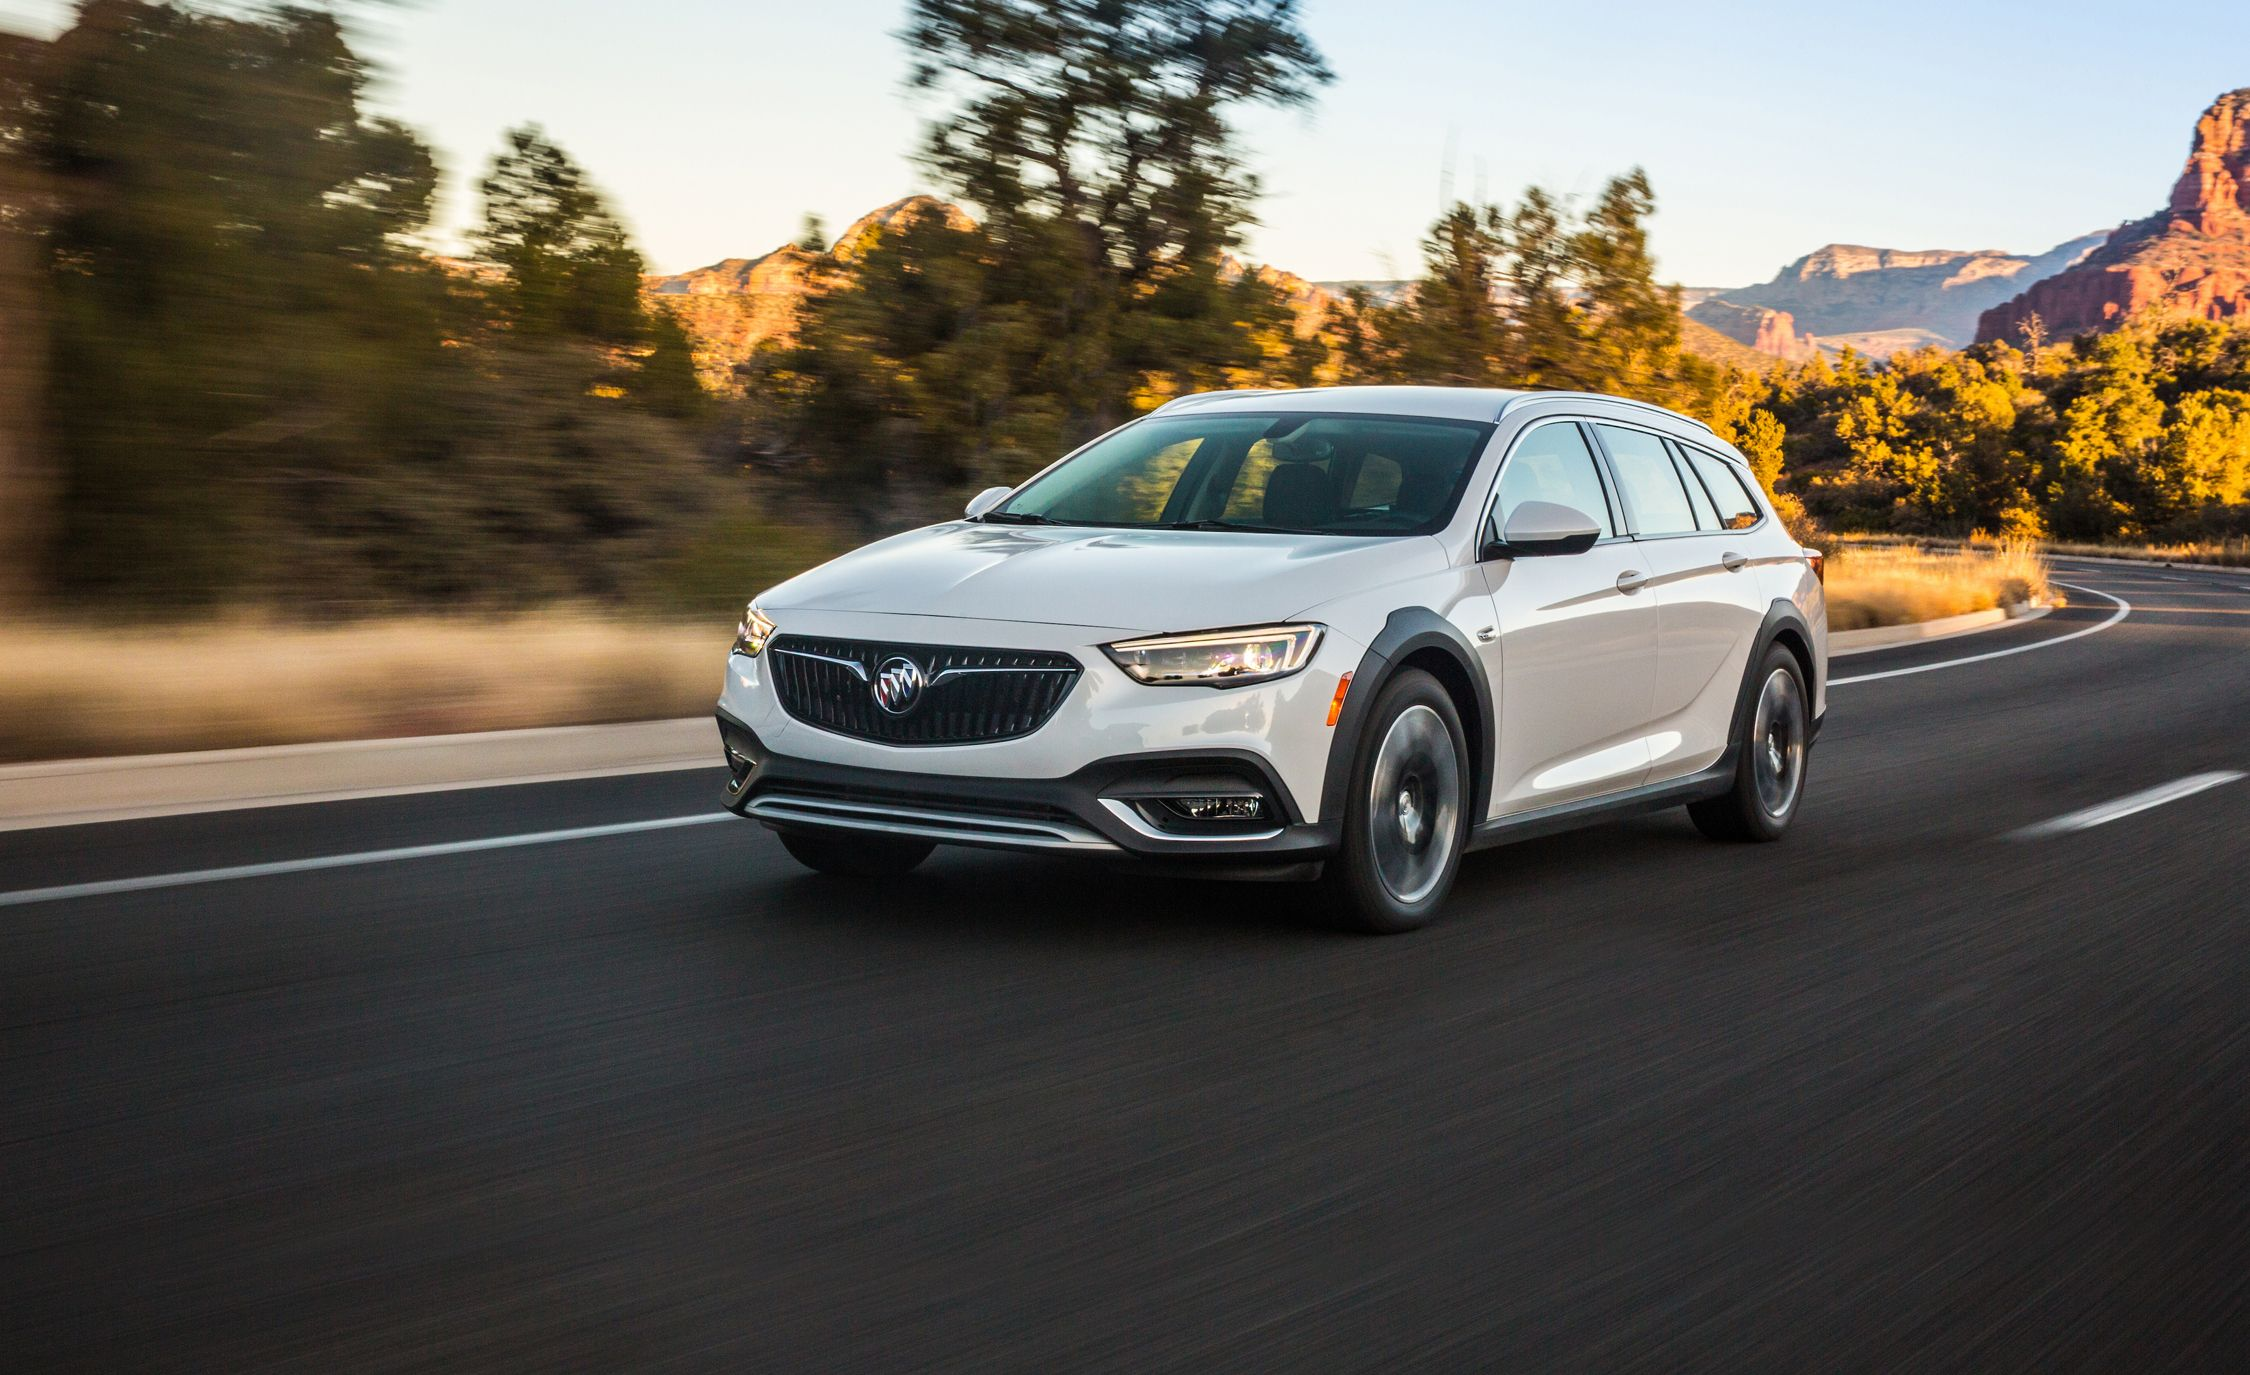 2018 buick regal tourx wagon first drive review car and driver rh caranddriver com Automobile Owners Manual User Manual PDF